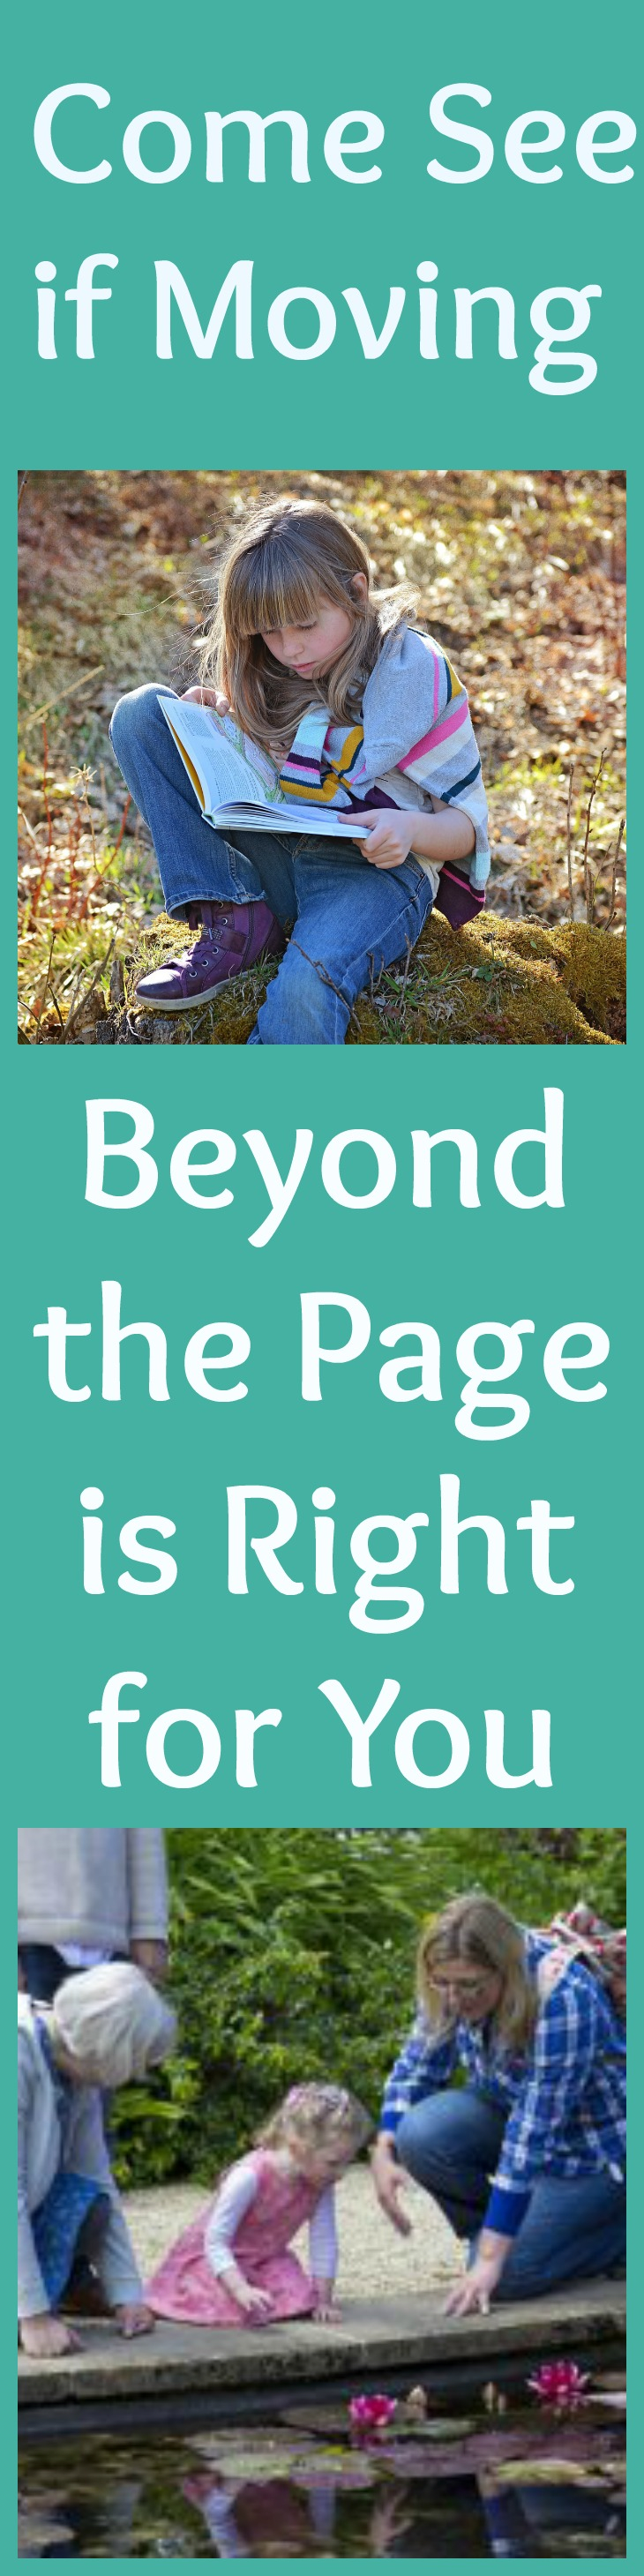 Moving Beyond the Page - Come See if This is Right for You